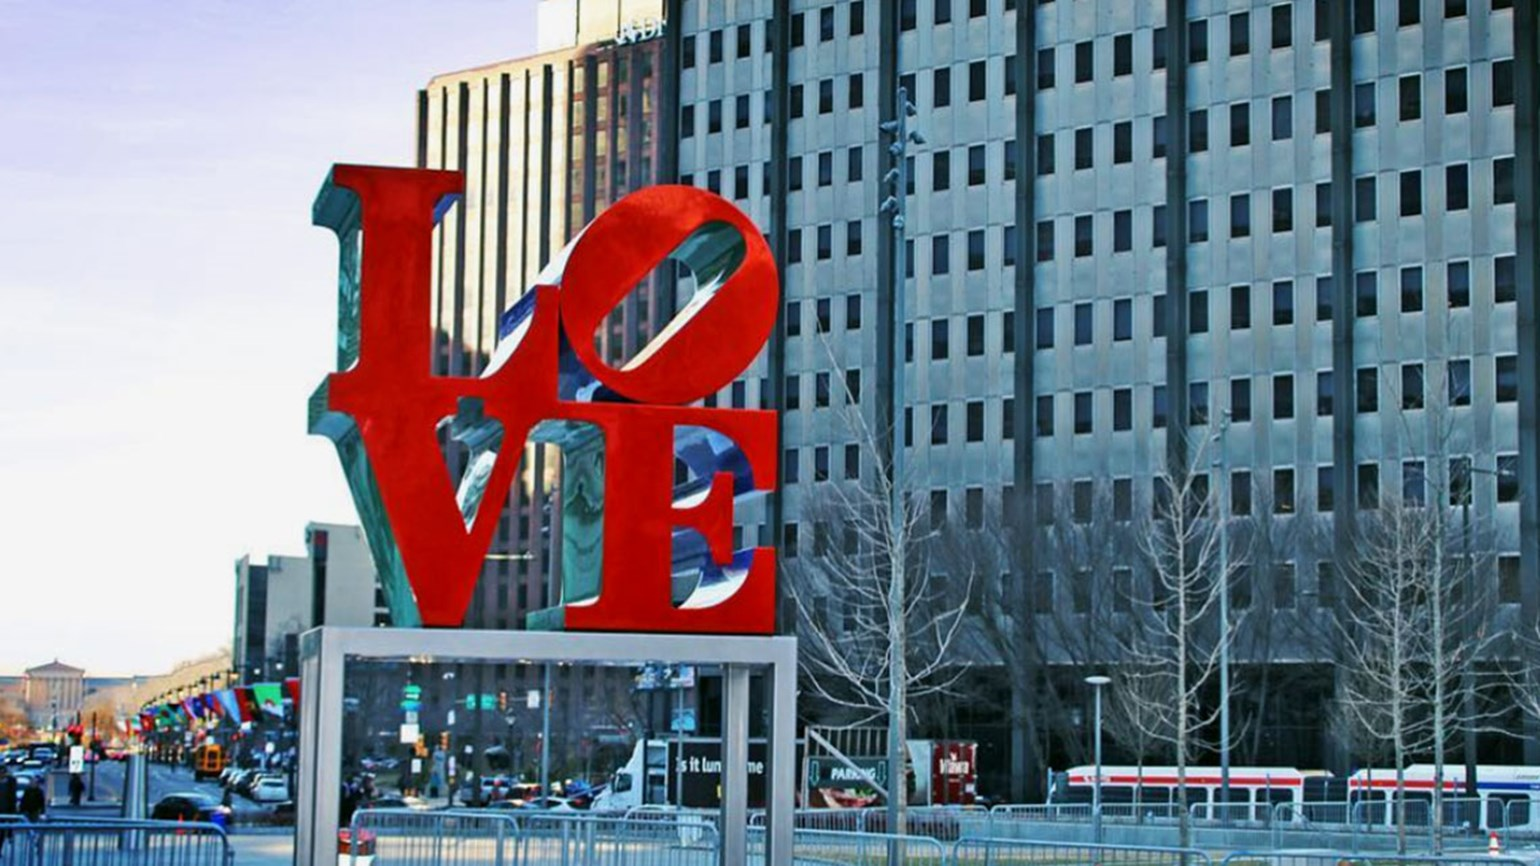 'LOVE' returns: Philadelphia park gets its sculpture back